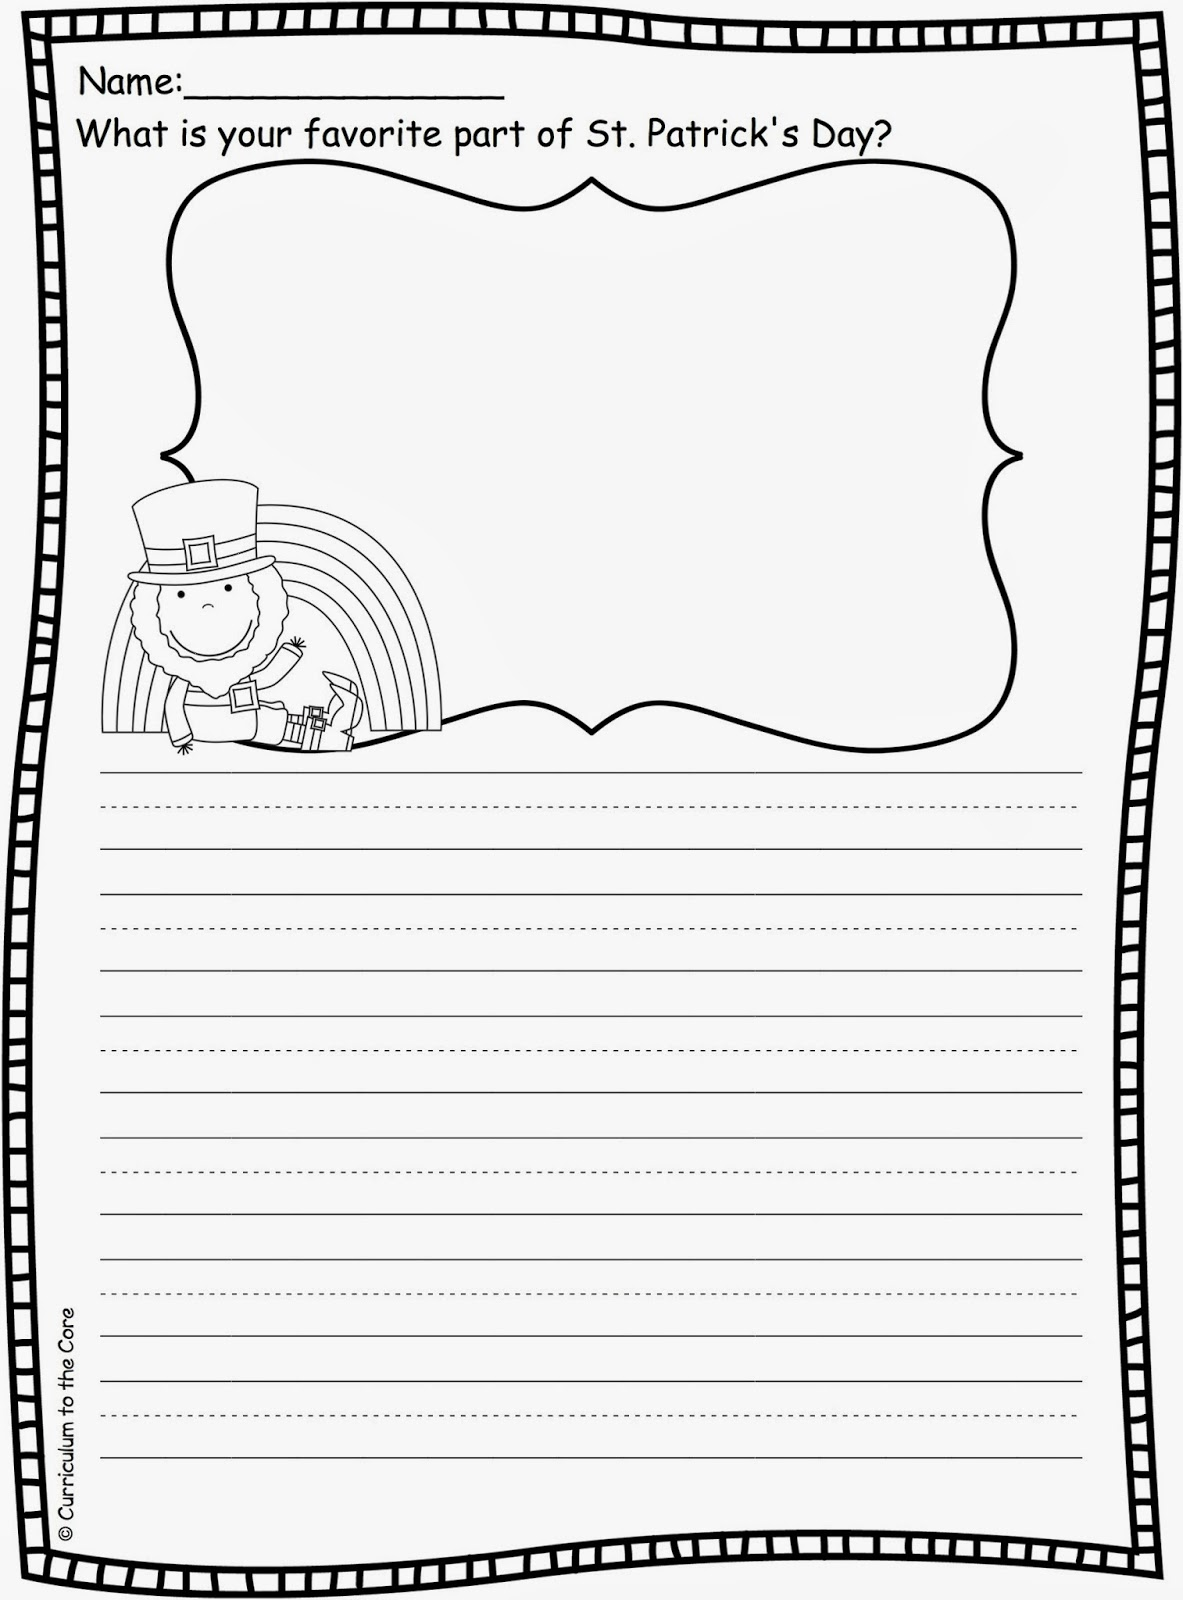 14 Best Images Of My Favorite Part Worksheet